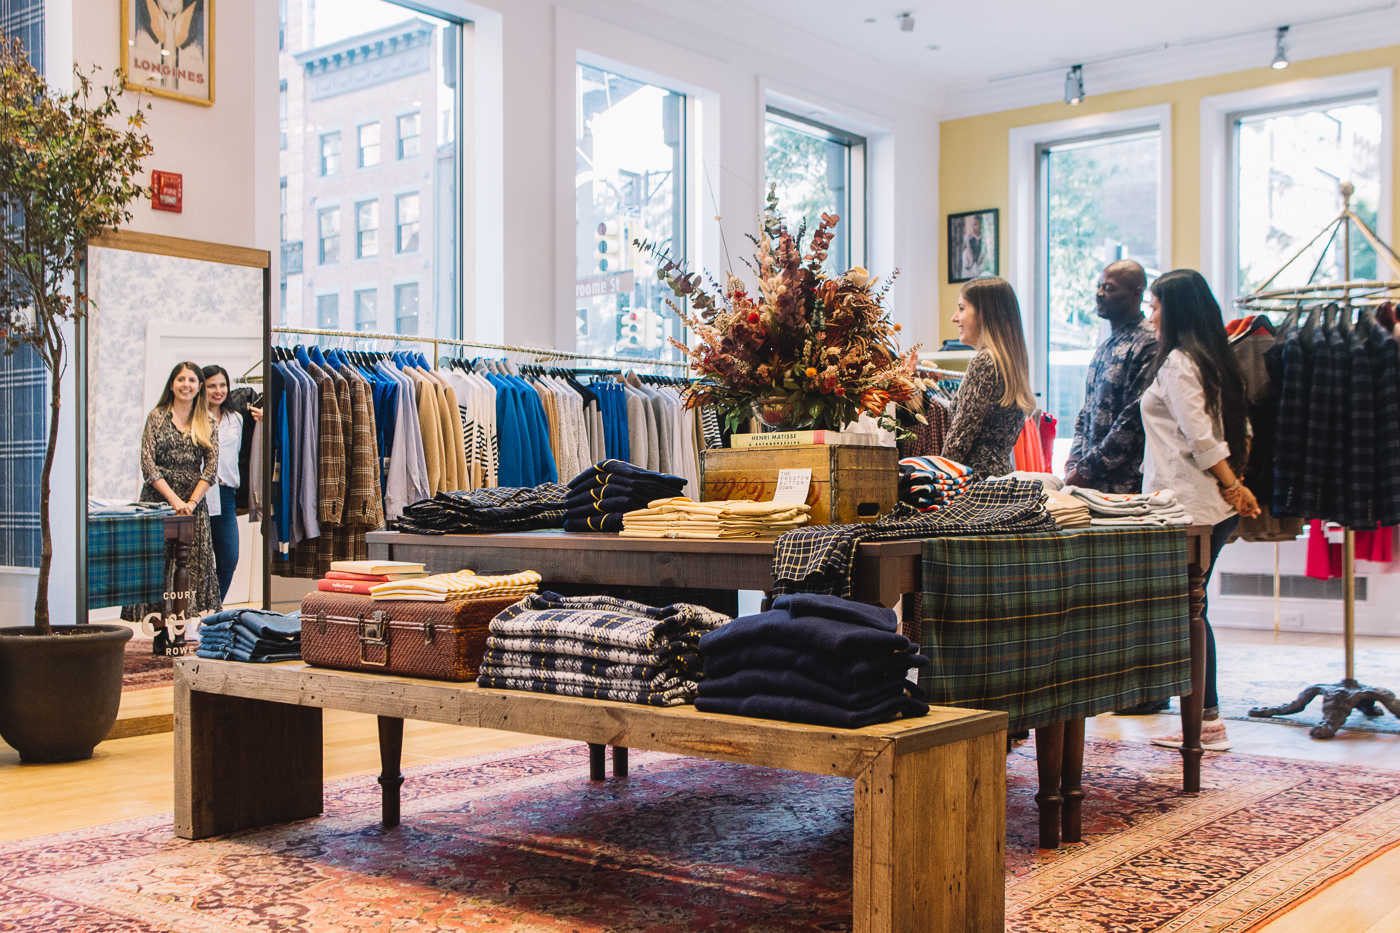 Court & Rowe, pop up, how to build a pop up, New York pop up, things to see in New York, short-term retail